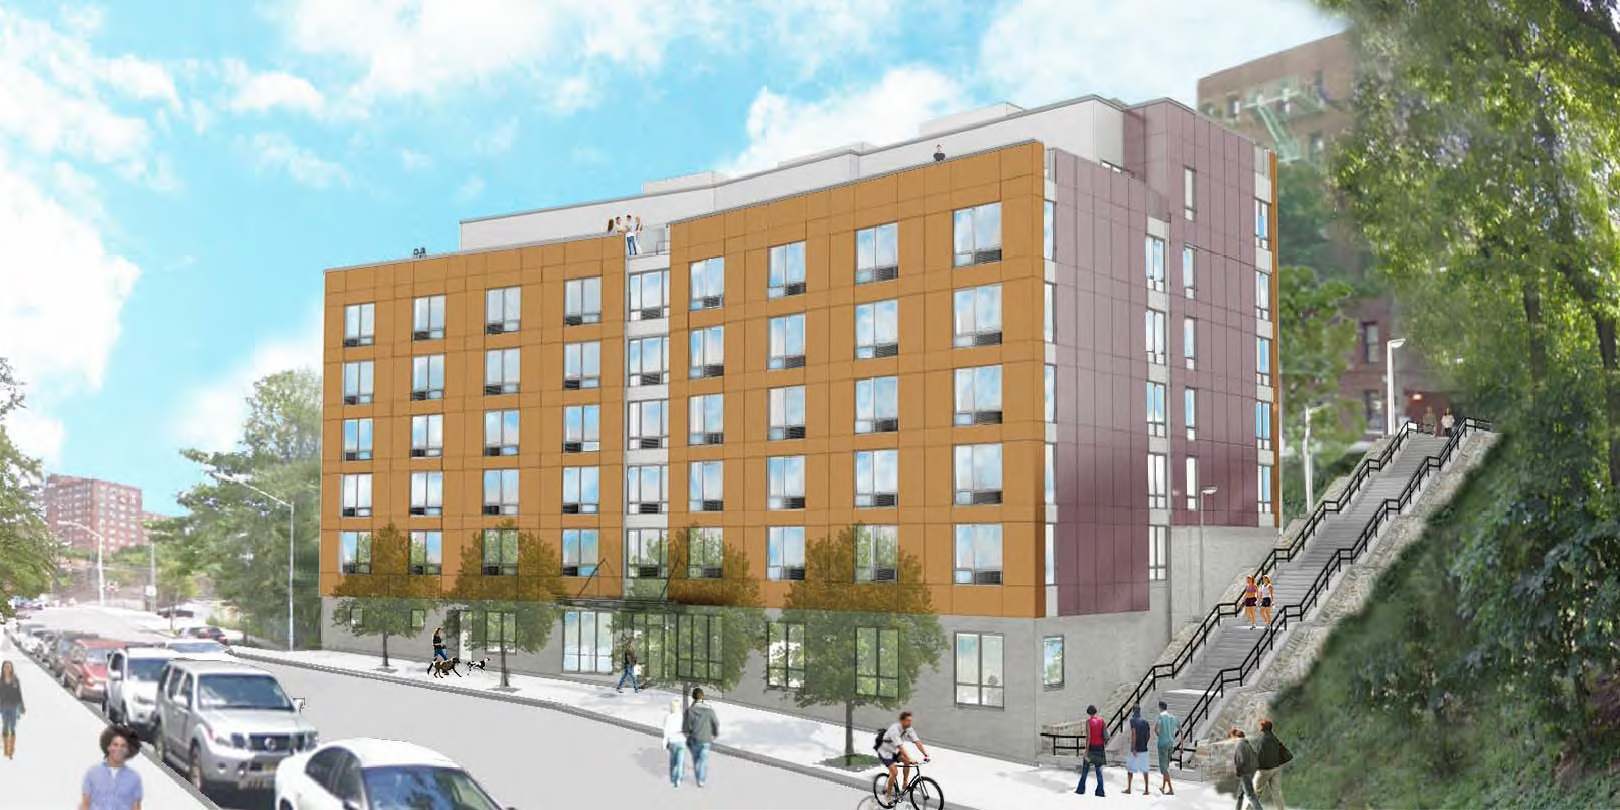 1434 Undercliff Avenue, rendering via Services for the Underserved